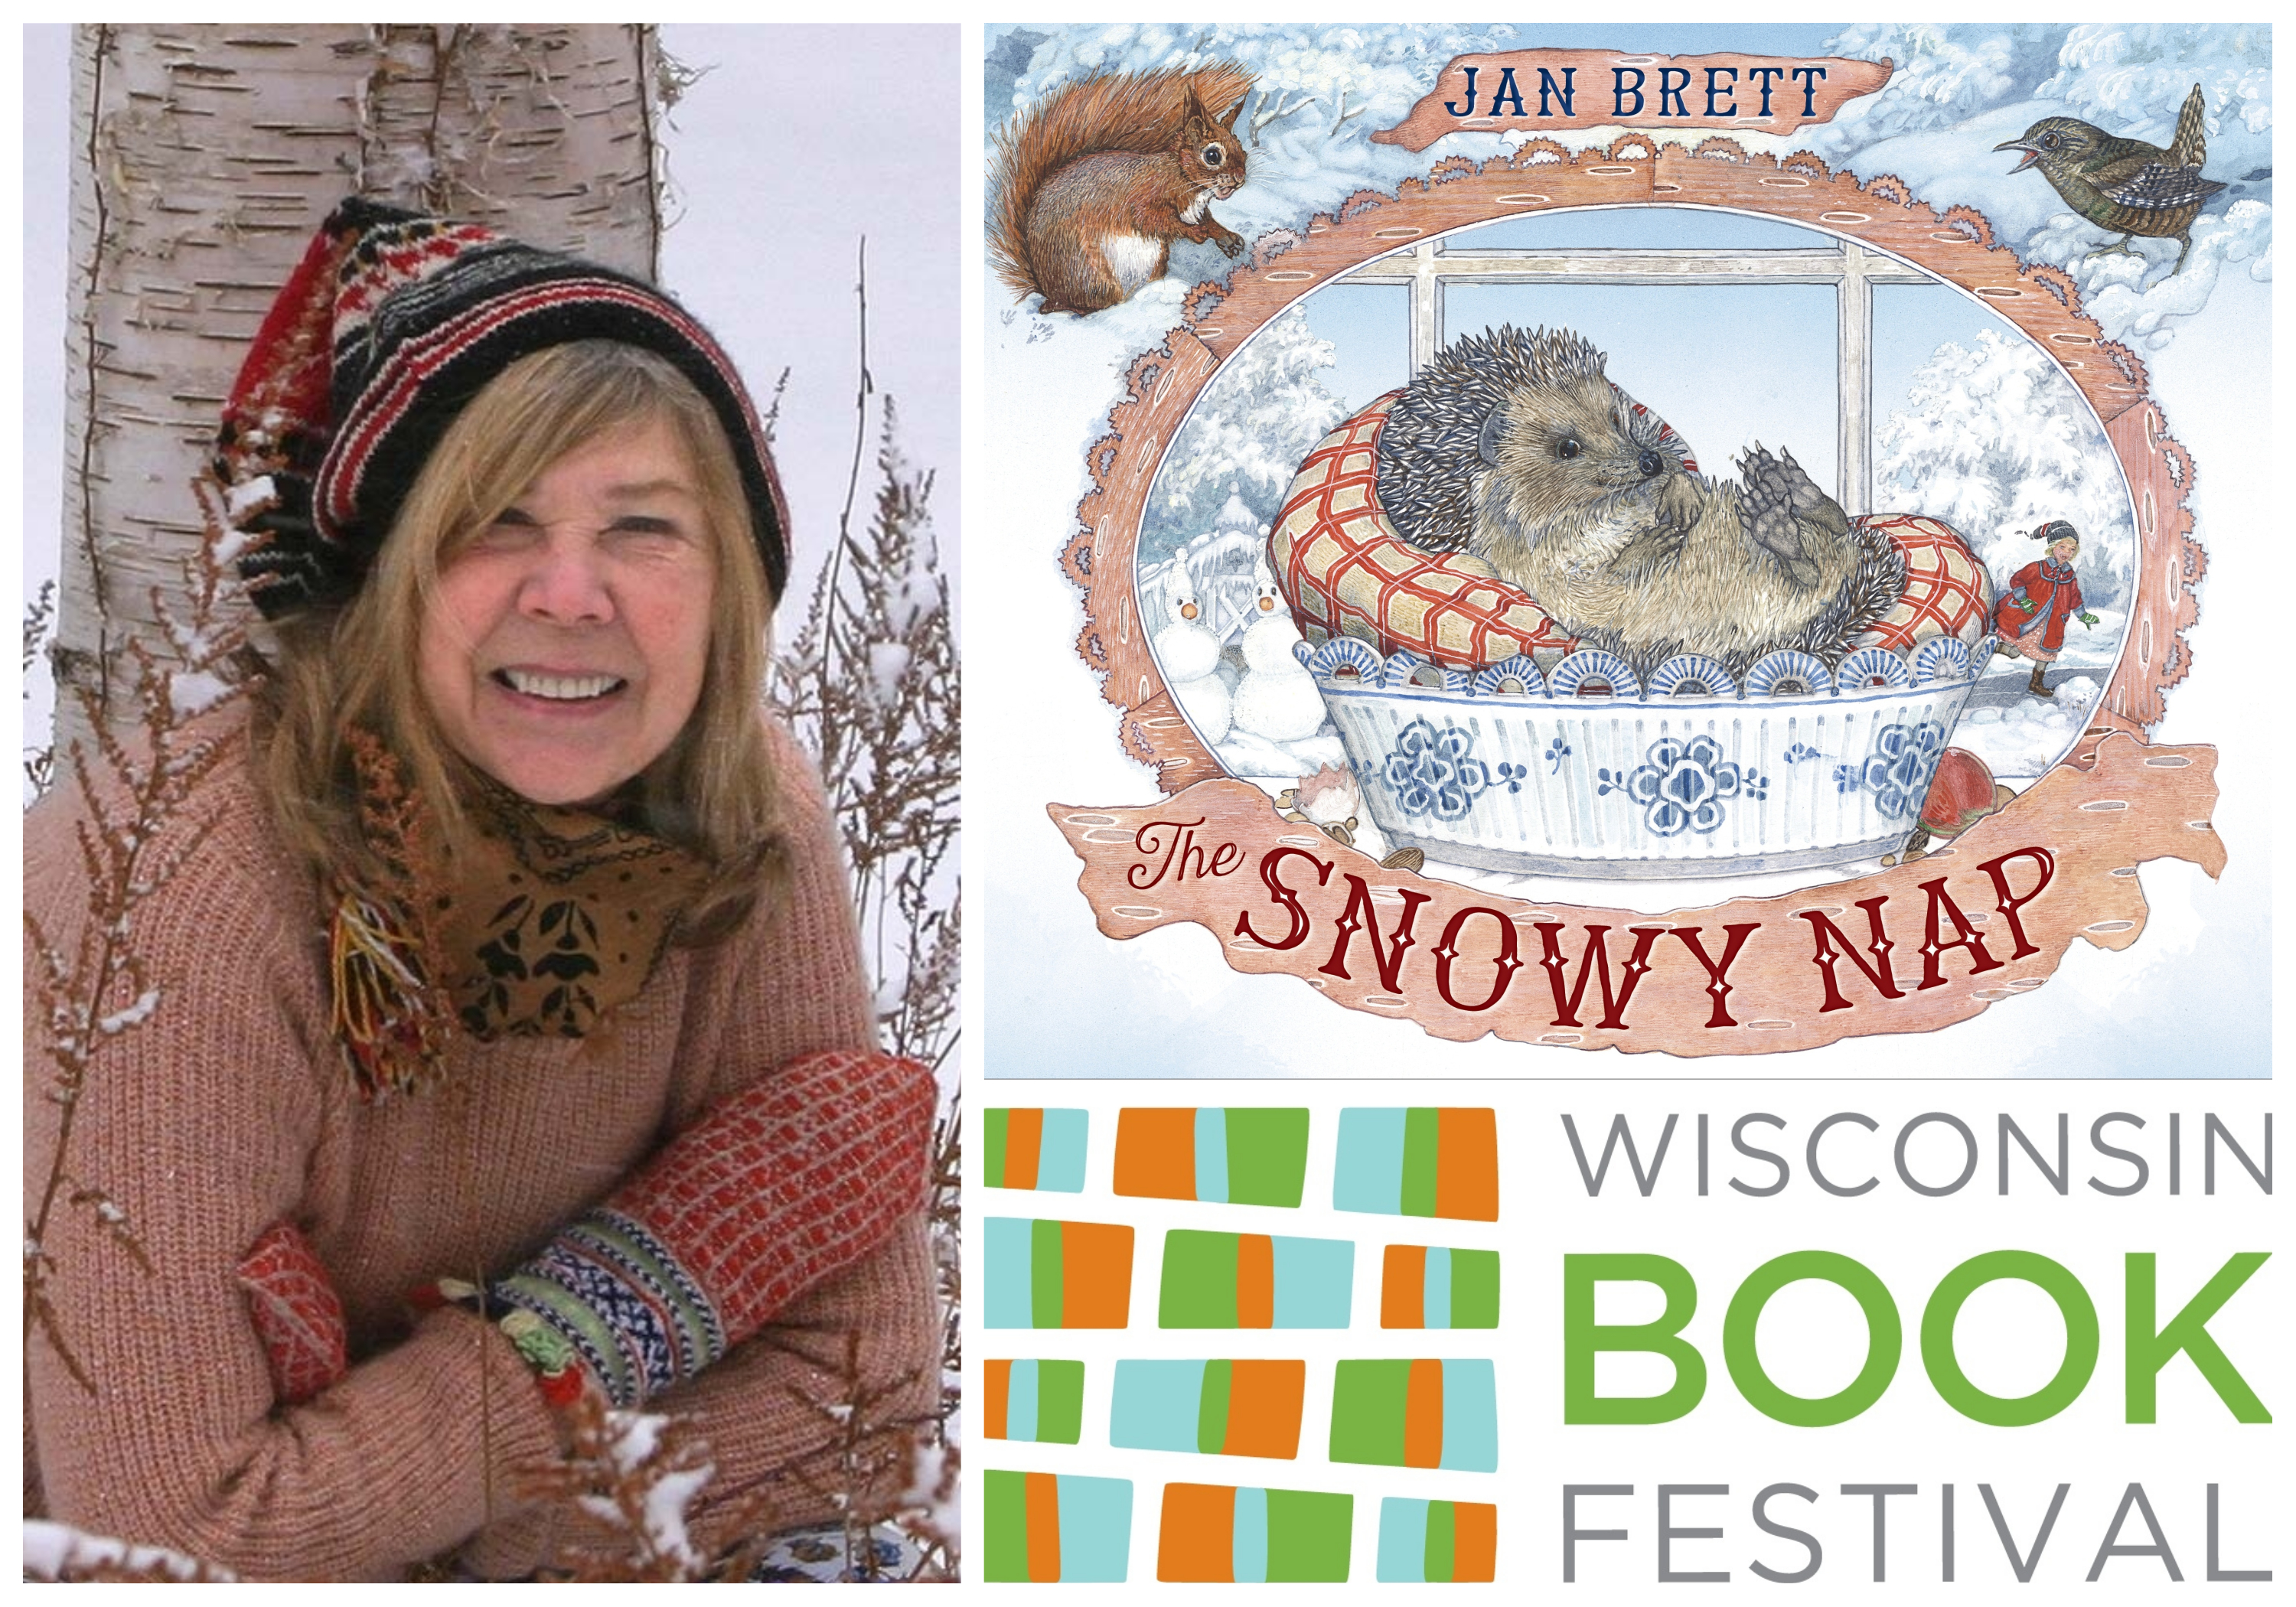 Jan Brett event